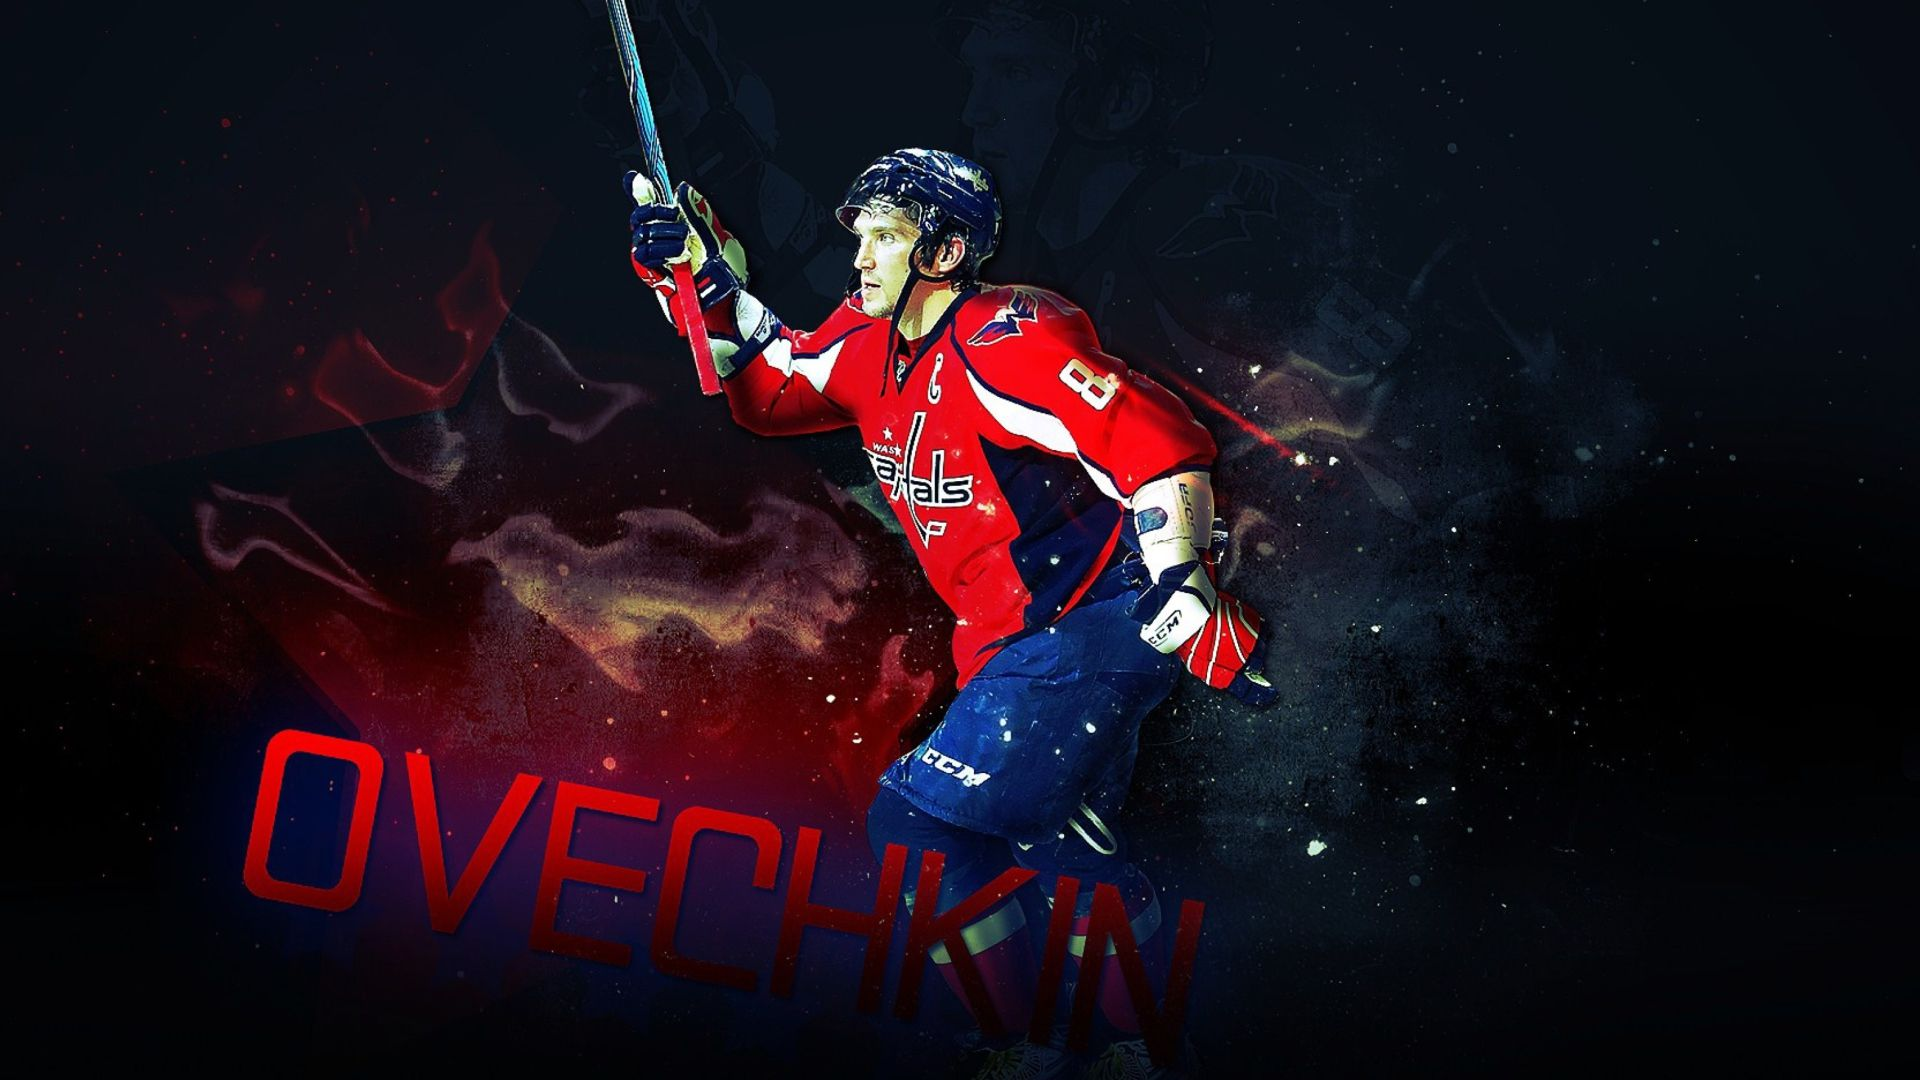 Wallpaper For Iphone Hockey Ovechkin